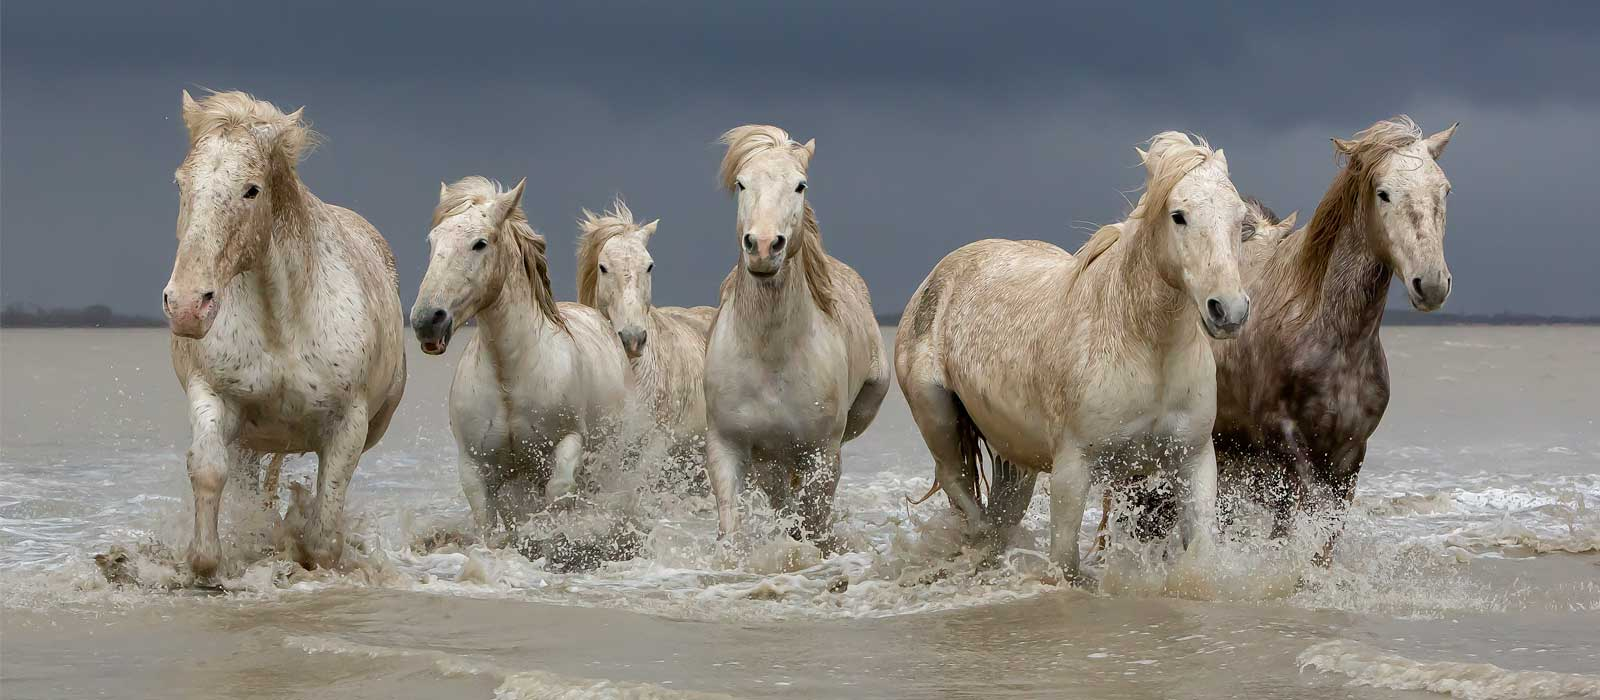 Group of Camargue Horses  - Storm Brewing